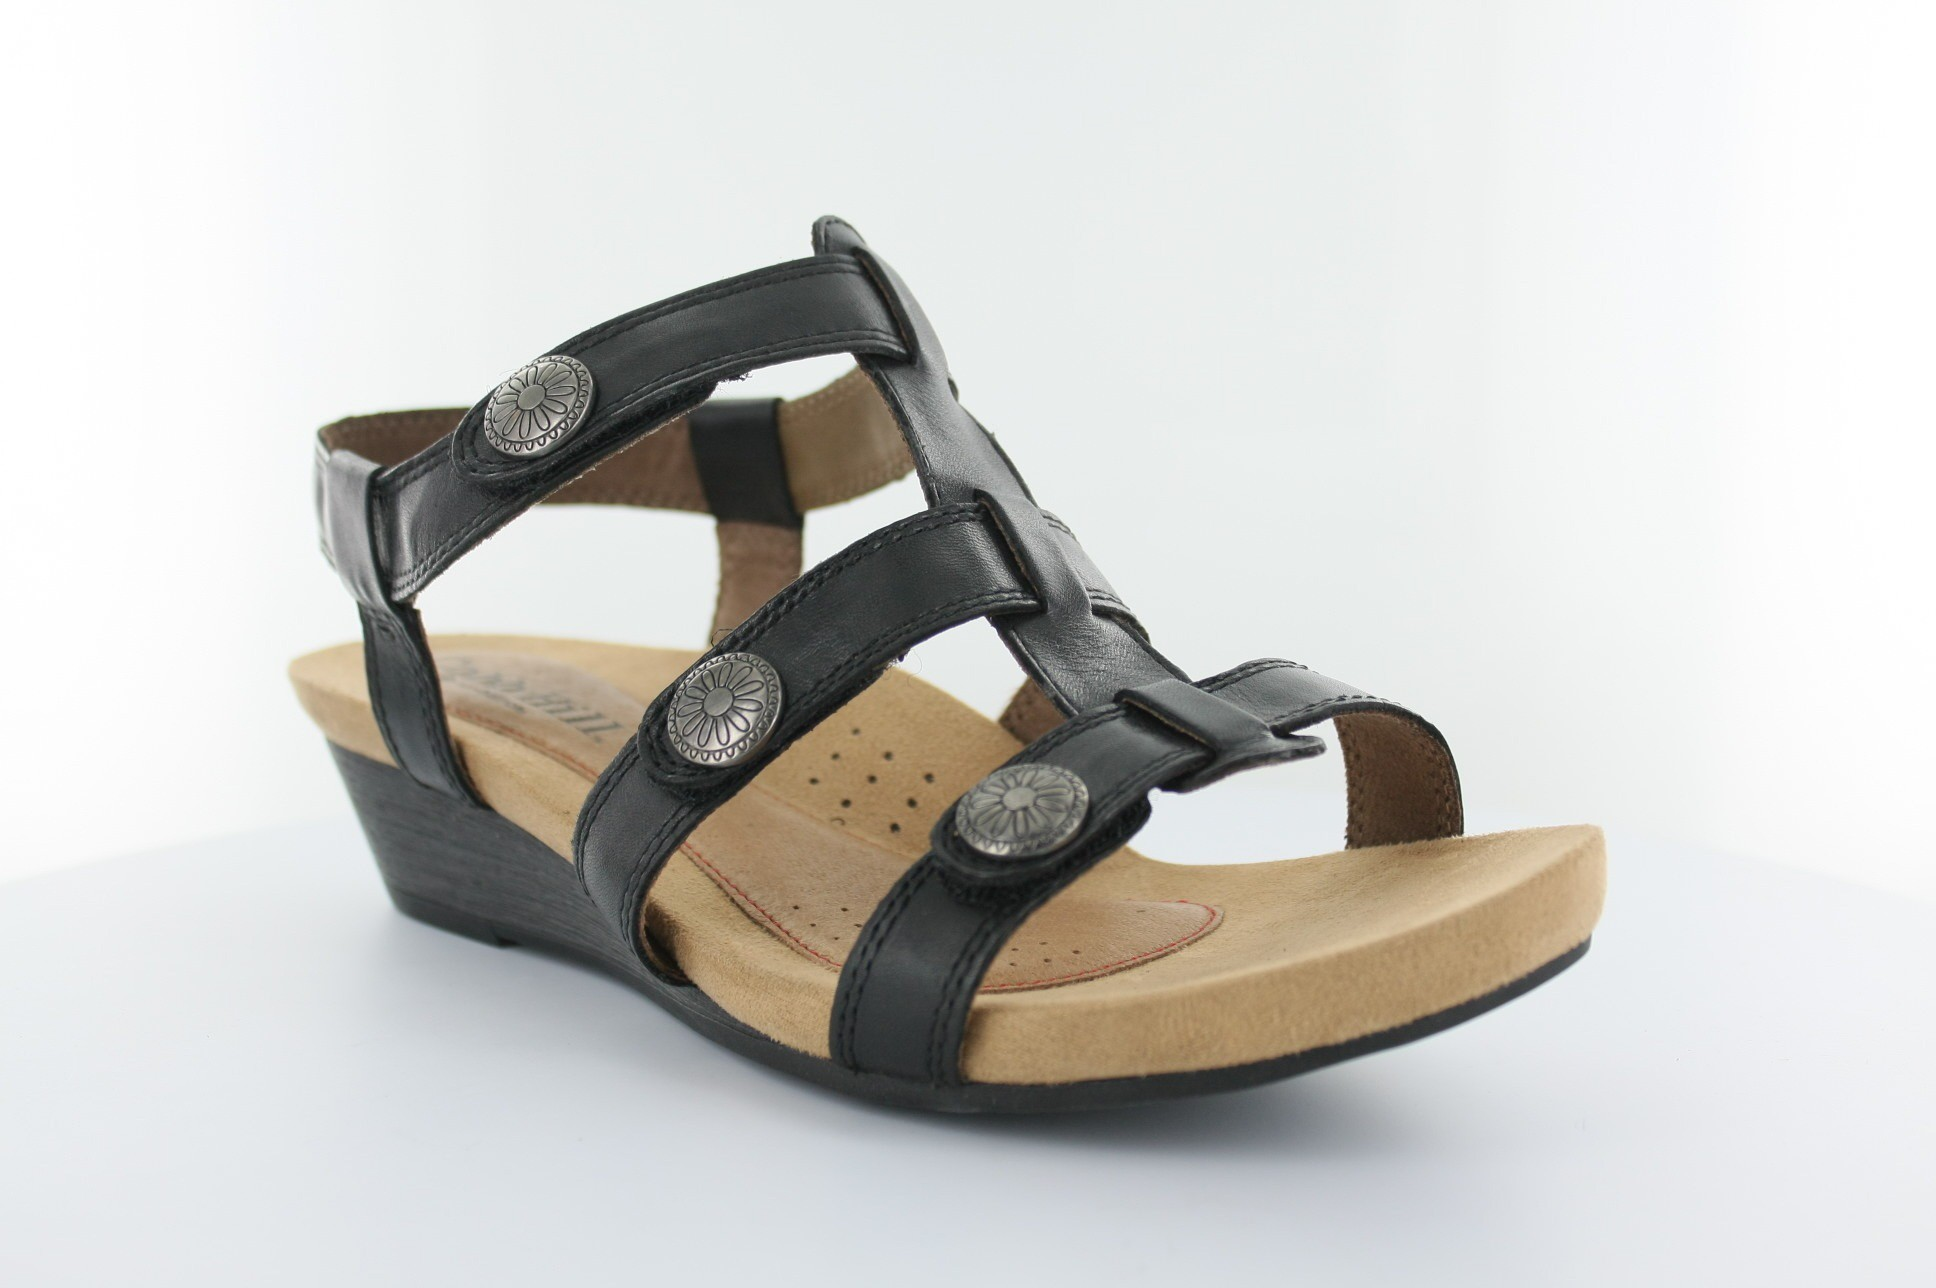 Comfortable Casual Supportive Sandals Kintec Footwear